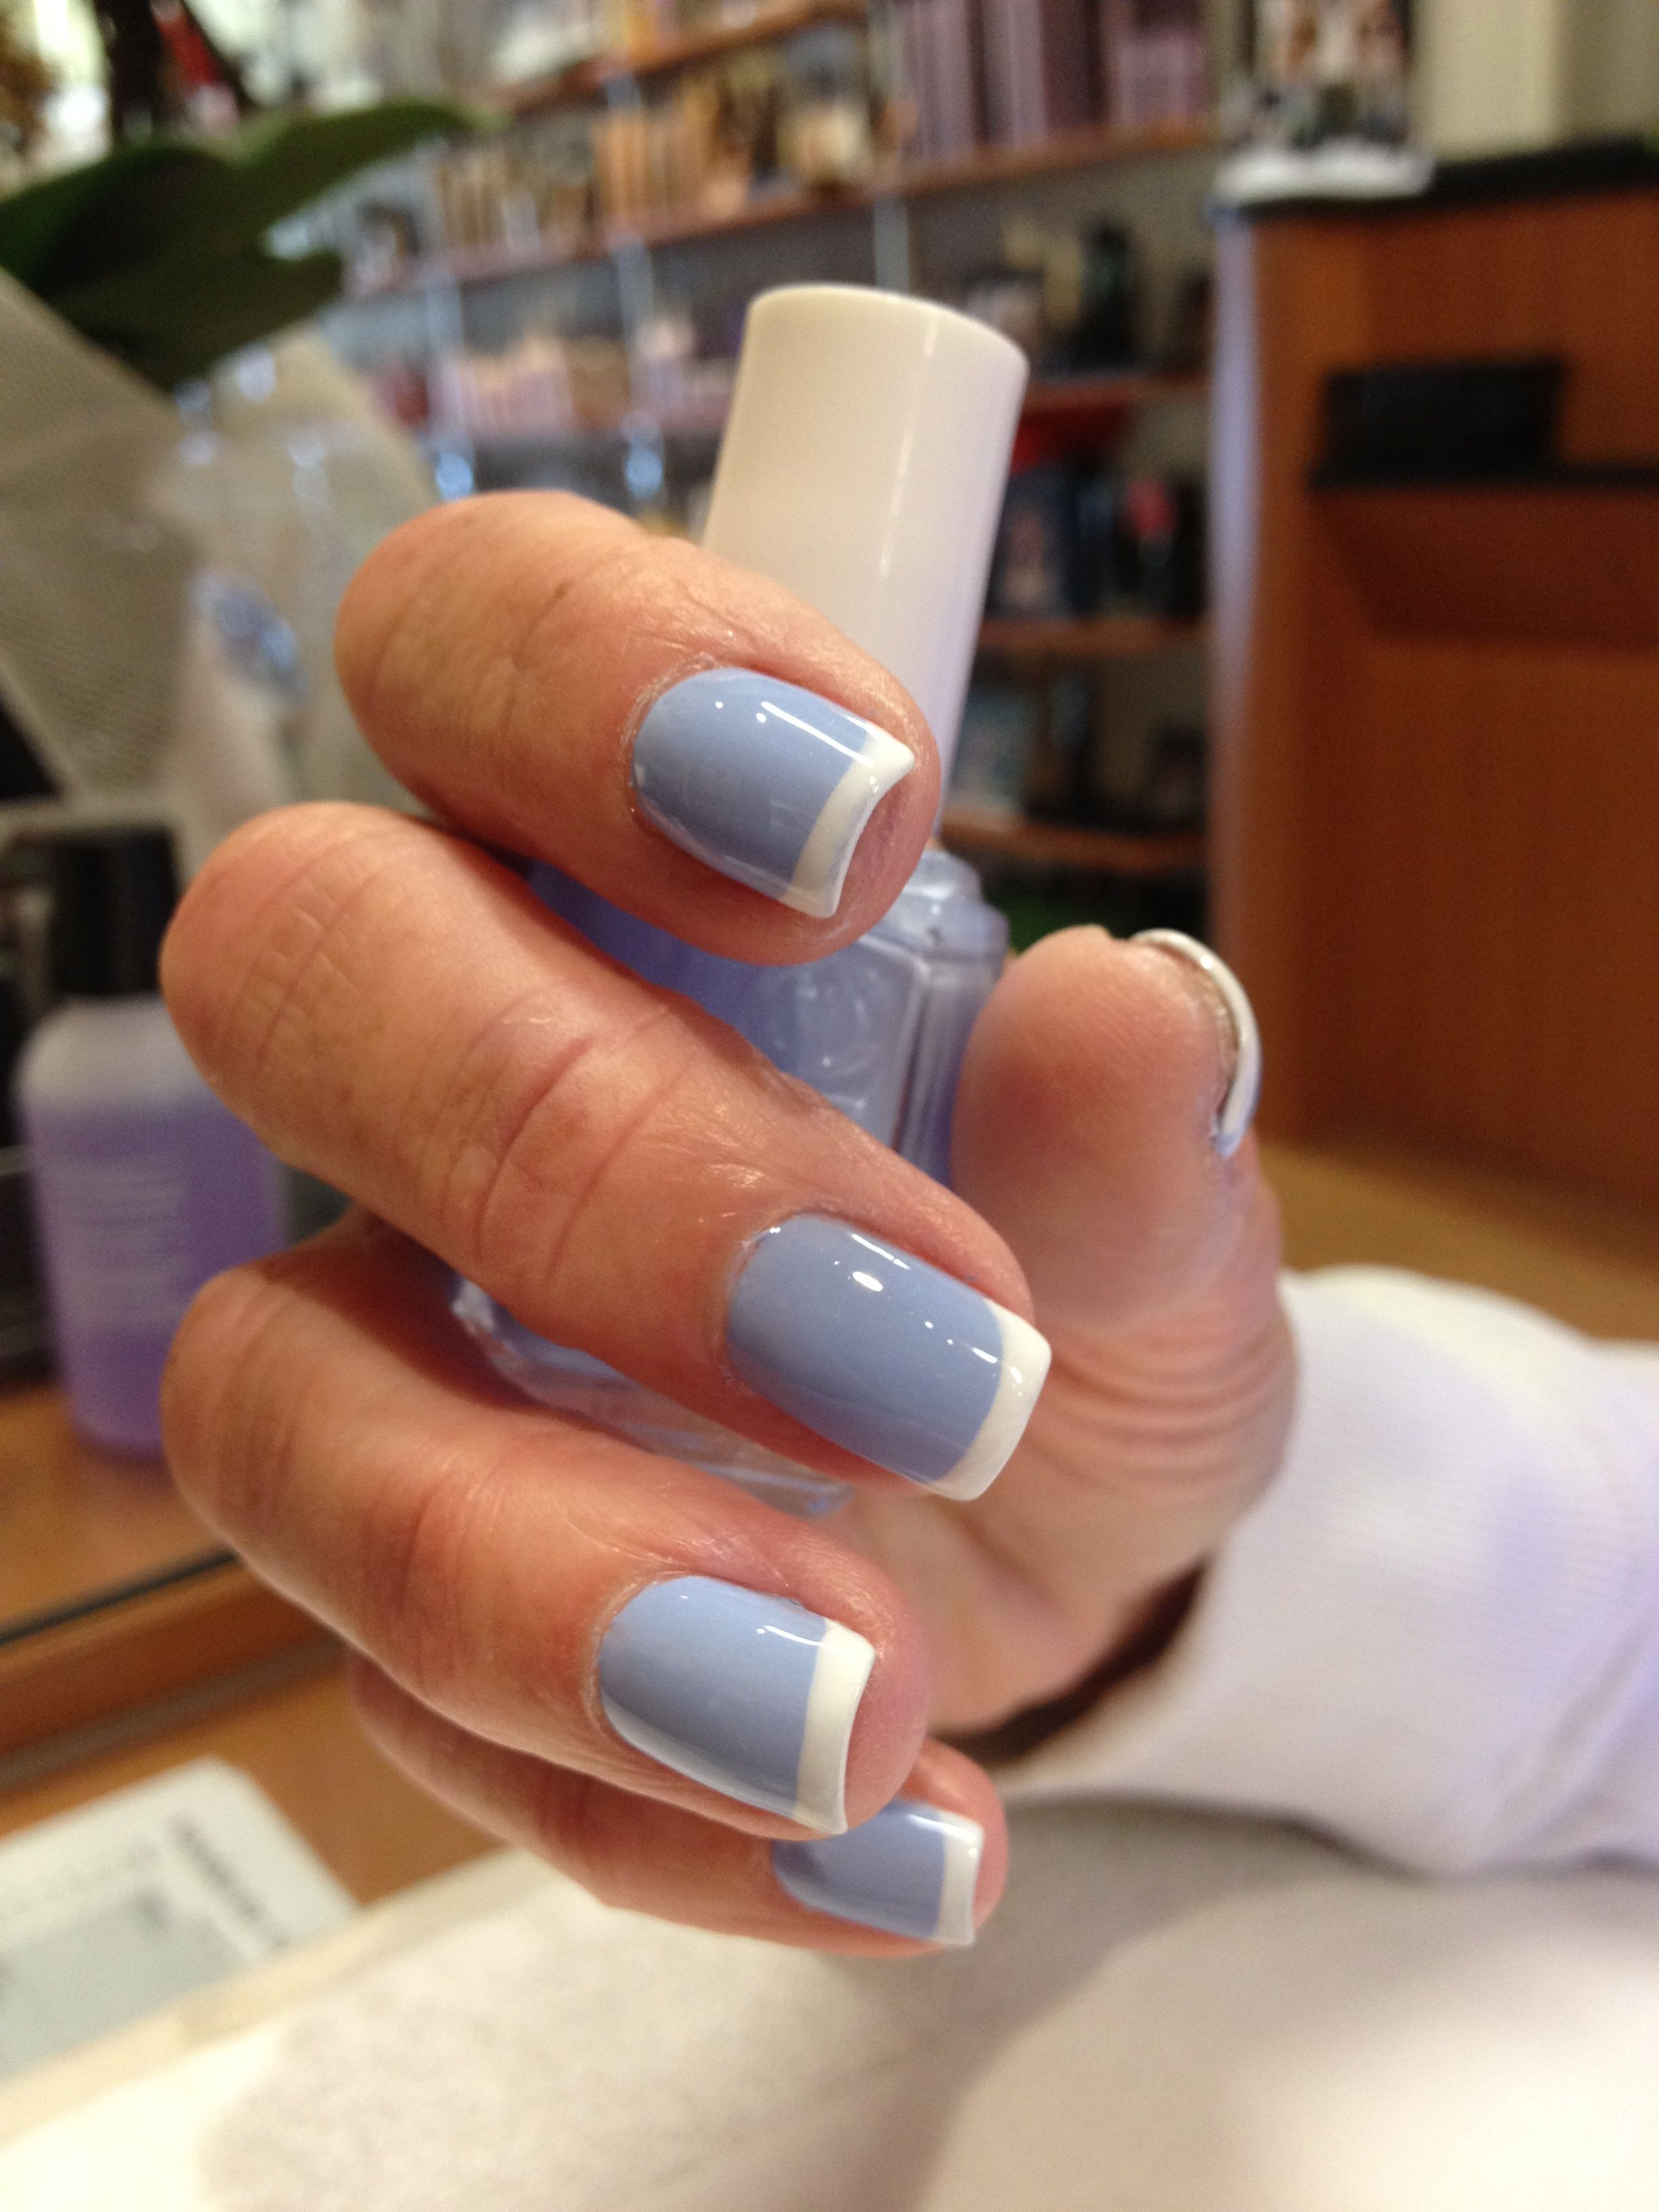 Blue French Manicure | Beauty | Pinterest | Blue french manicure ...